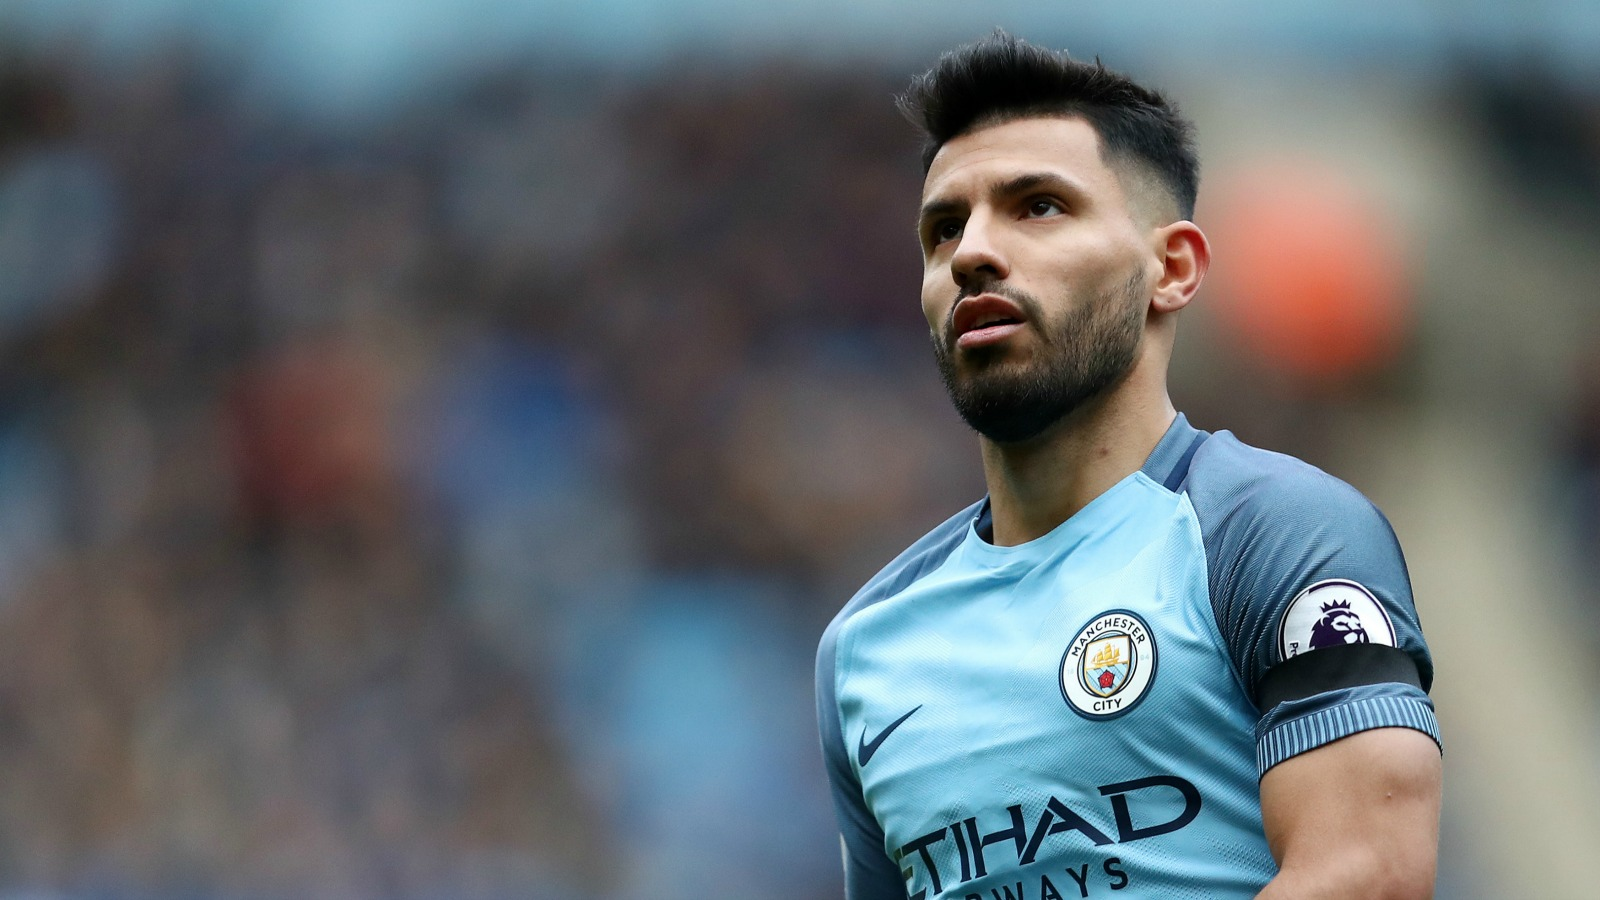 Sergio Aguero suspended for violent conduct again, this time for even longer